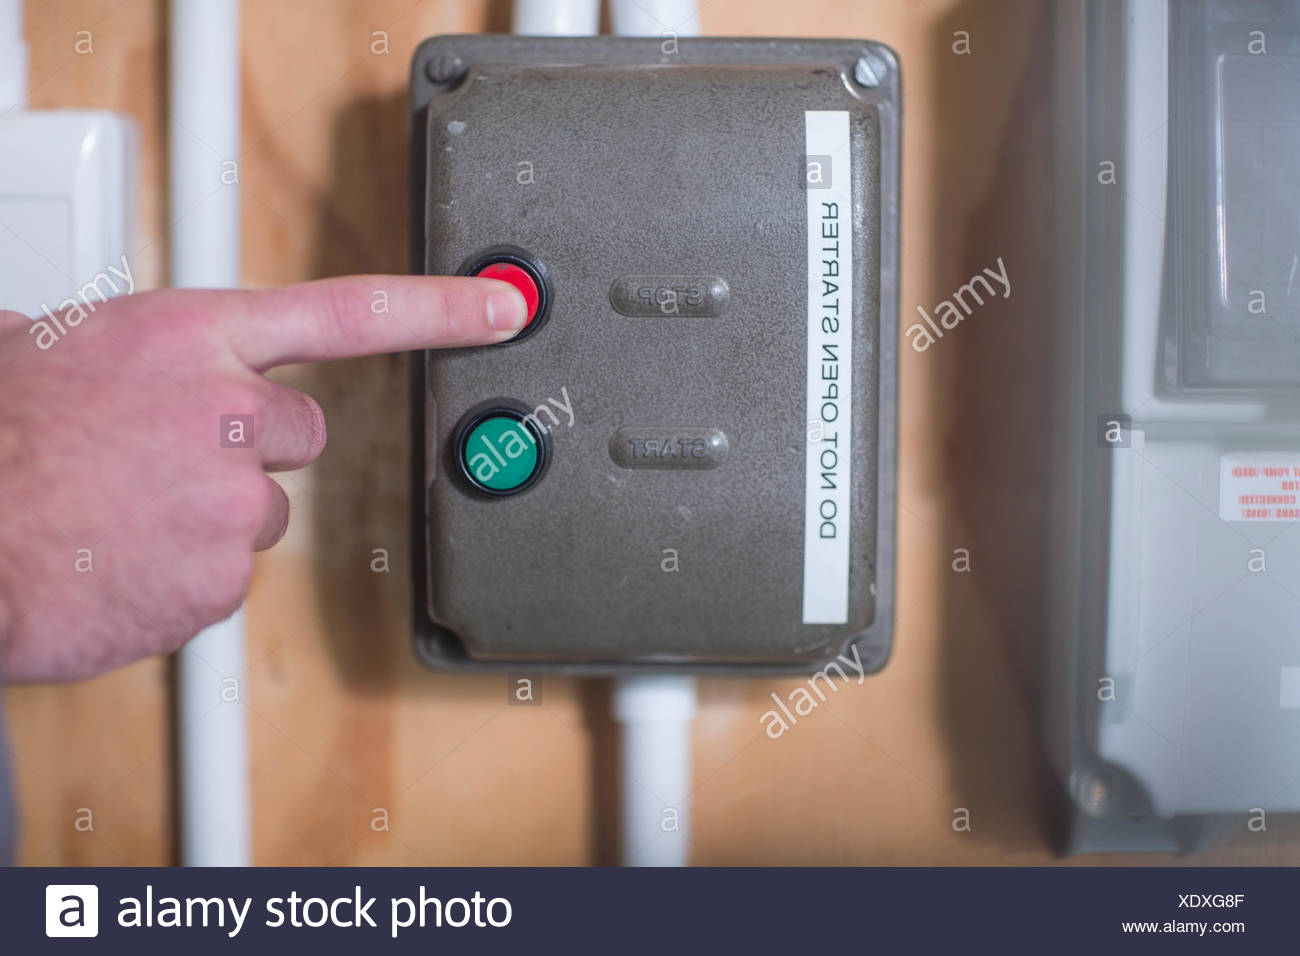 Hand turning off electrical control box Stock Photo: 283939951 - Alamy